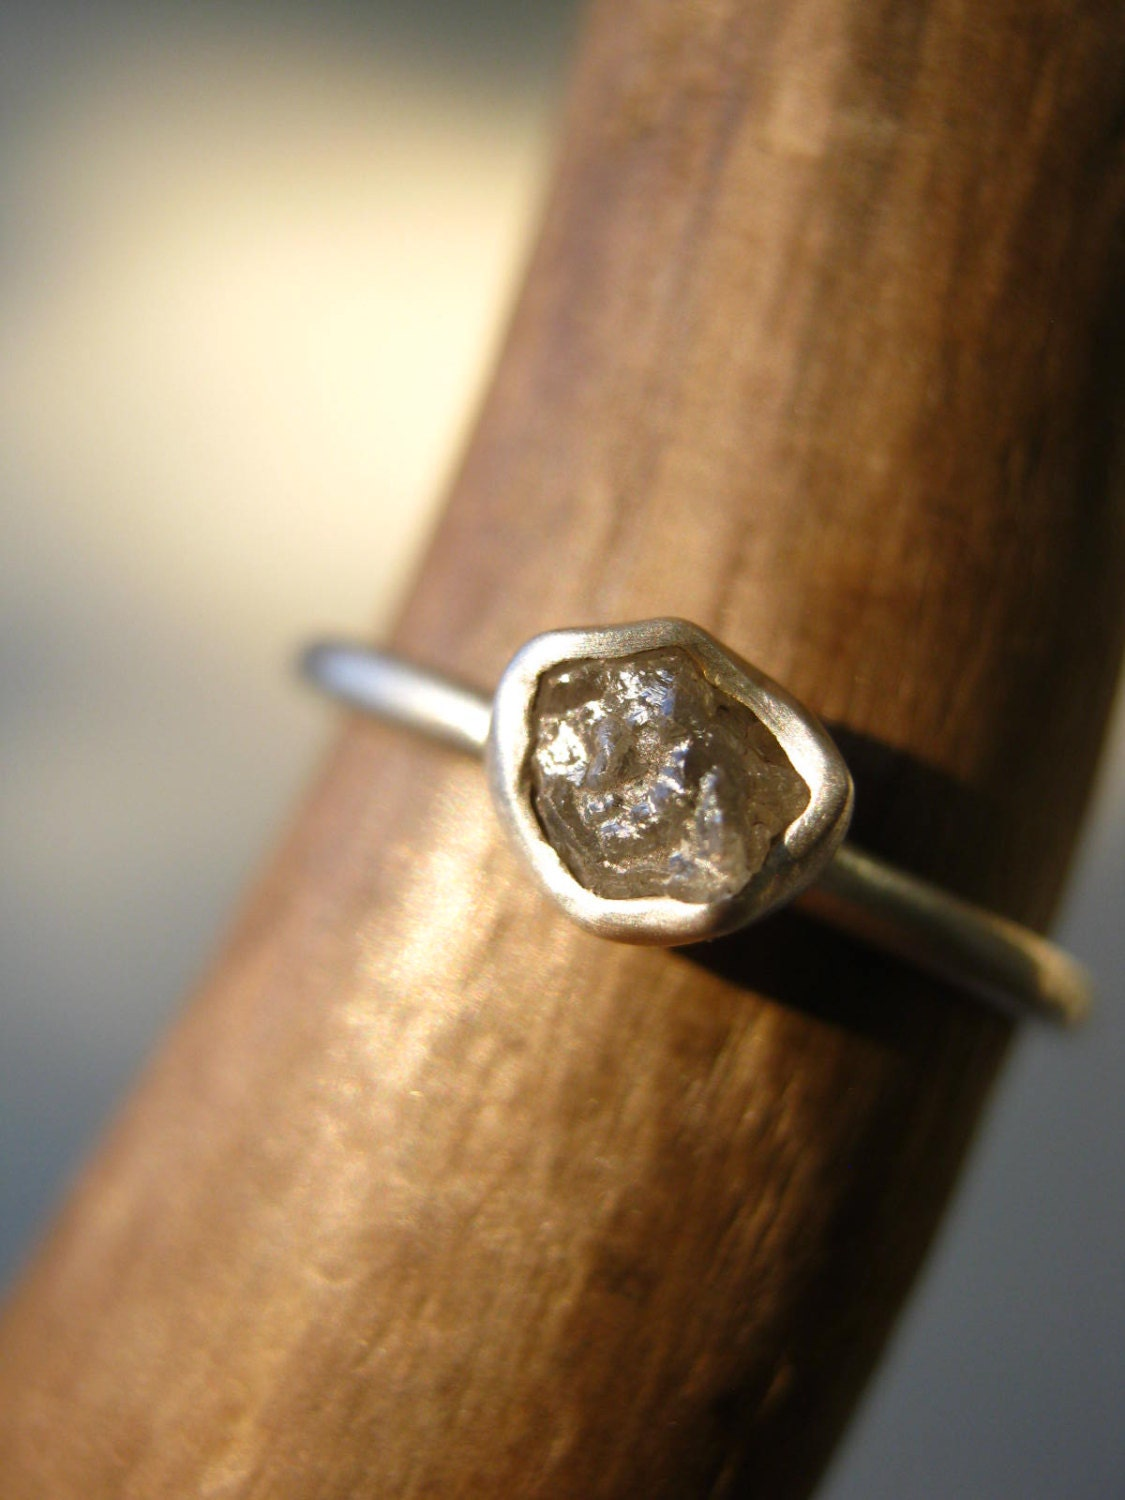 Rough diamond engagement ring sterling silver small for Tiny wedding ring